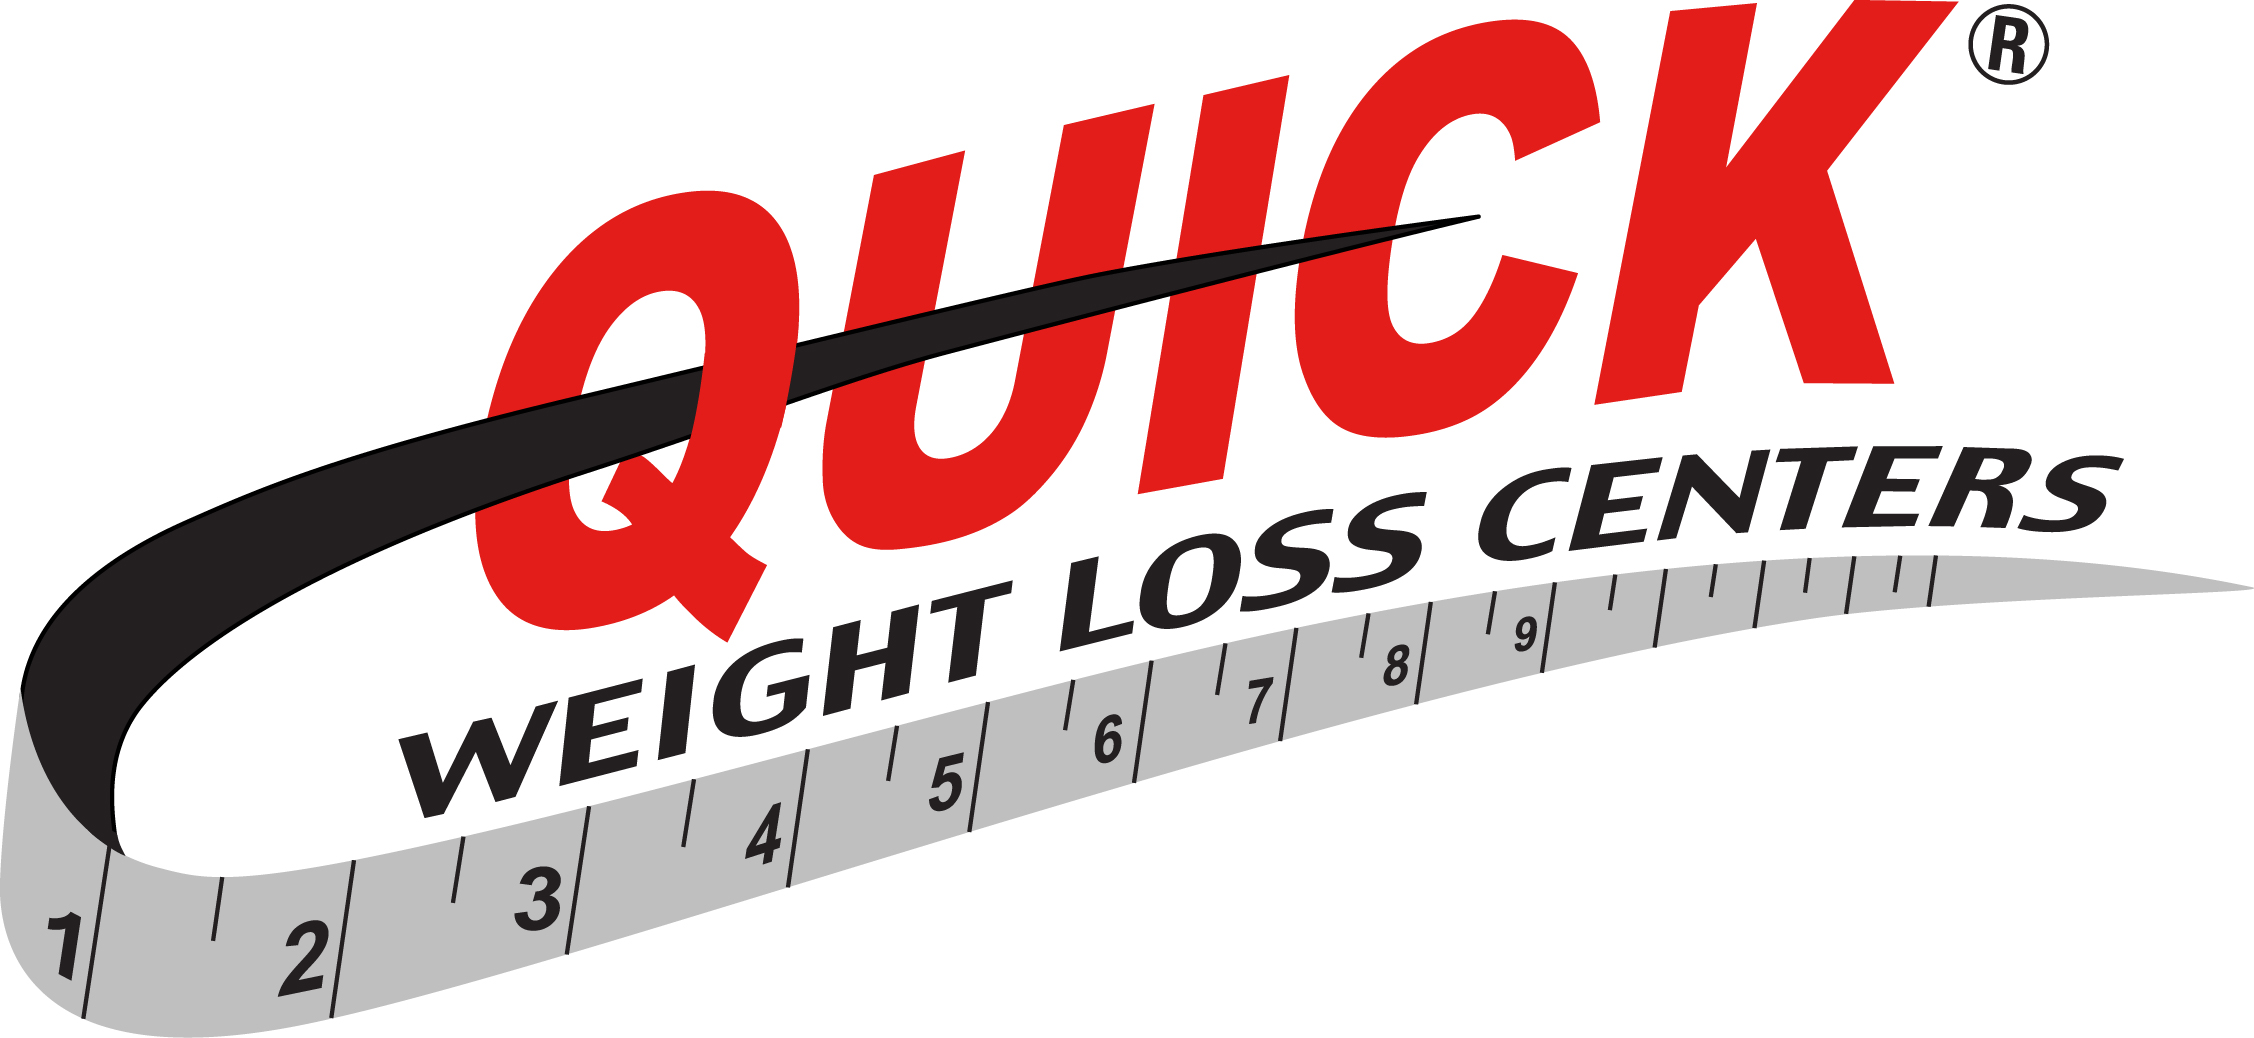 Quick Weight Loss Centers - 17 Ways To Lose Weight Fast